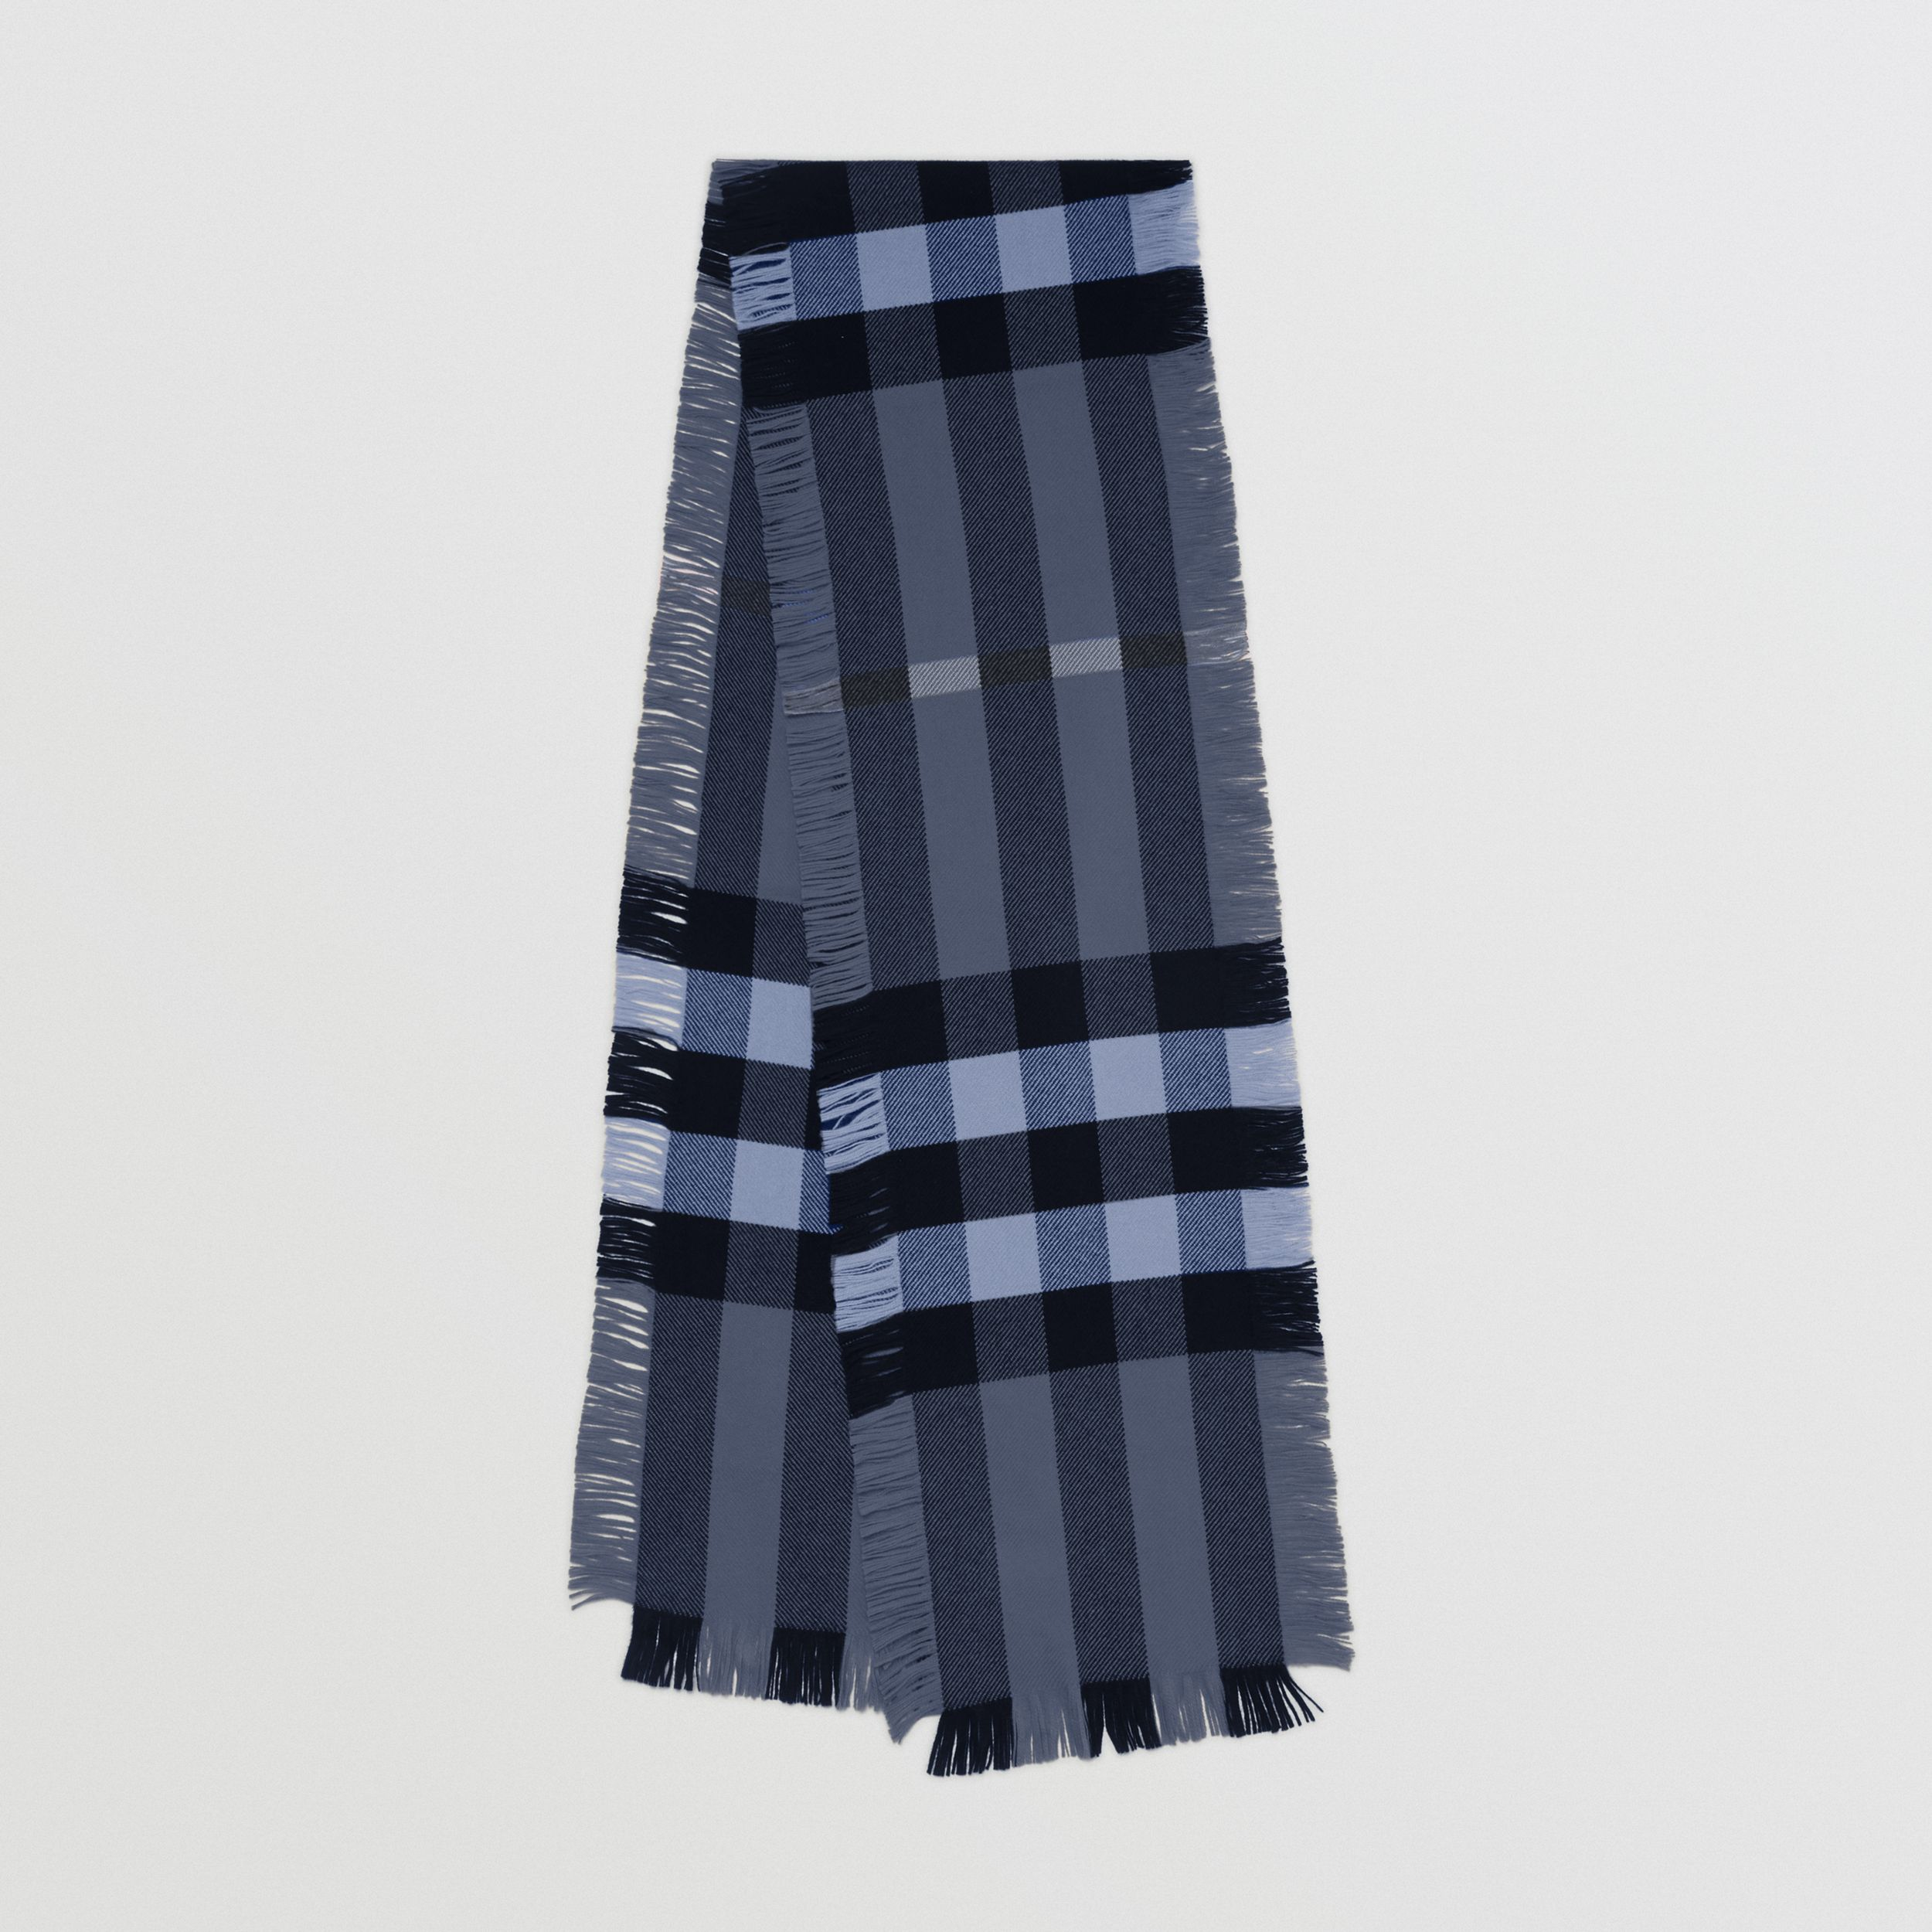 Fringed Check Wool Scarf in Bright Navy | Burberry - 1